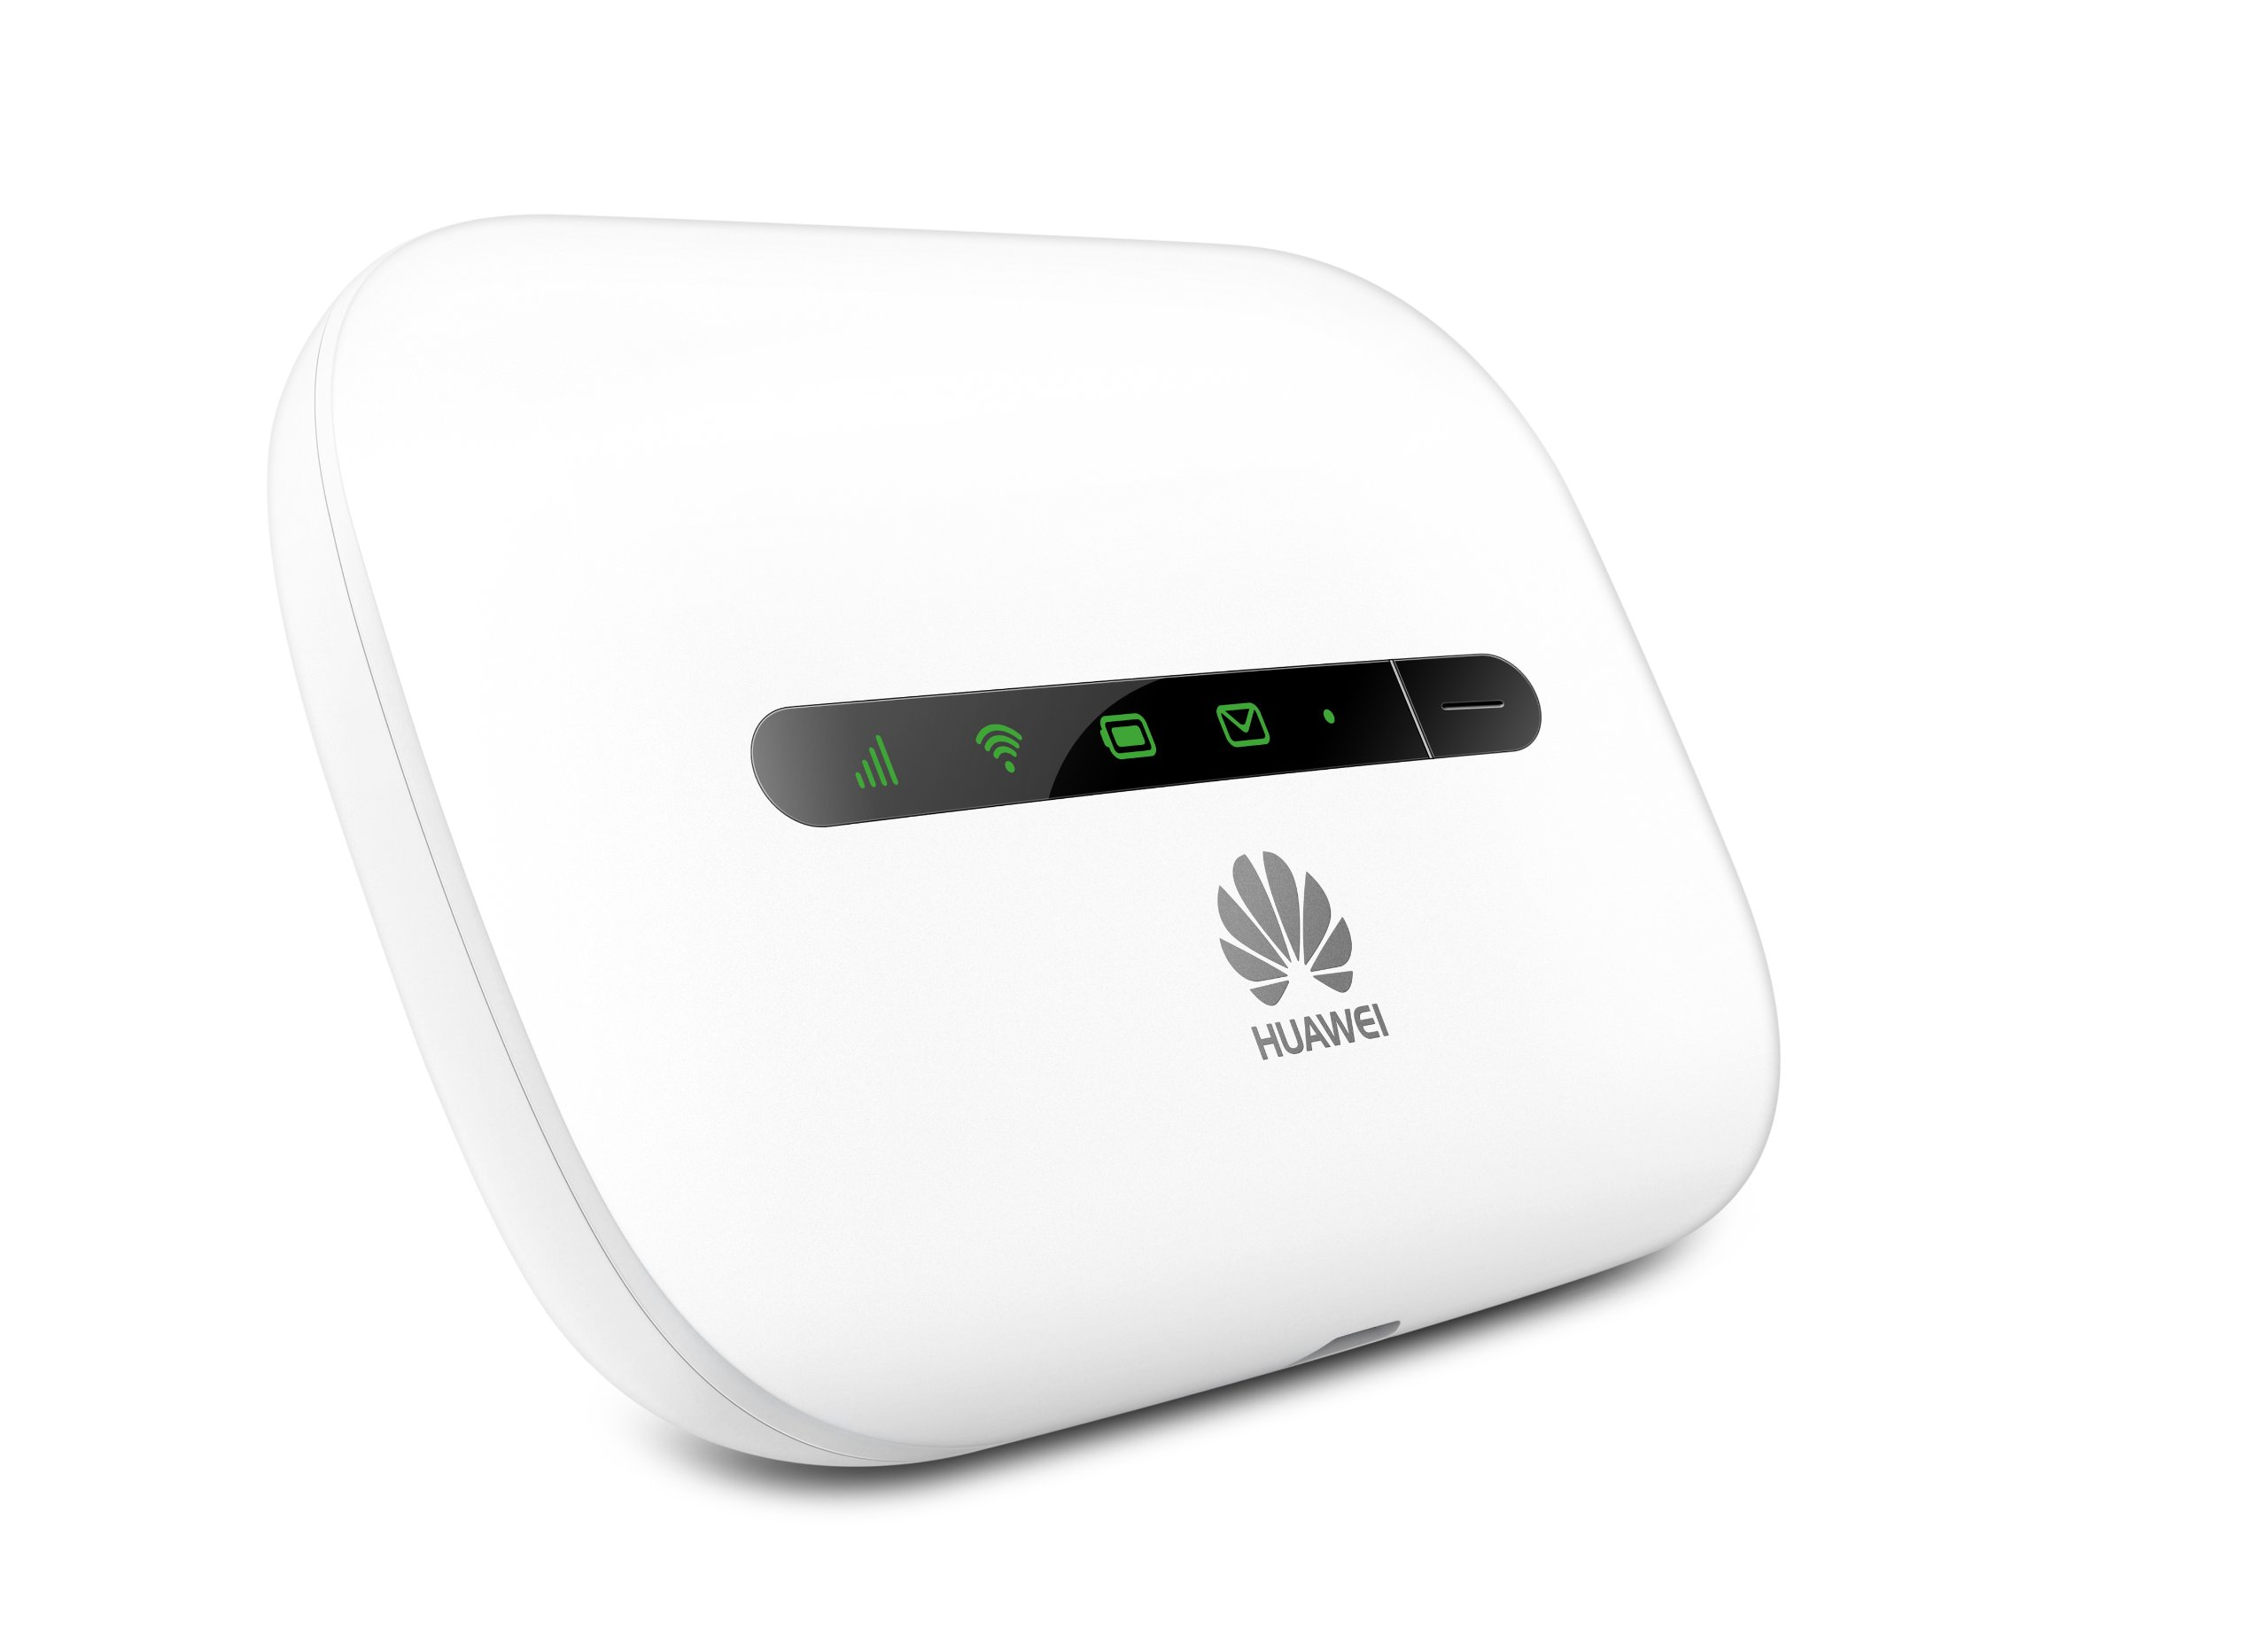 Huawei E5330Bs-2 3G Mobile WiFi Hotspot (3G in Europe, Asia, Middle East & Africa), OEM/ORIGINAL from Huawei. White by HUAWEI (Image #5)